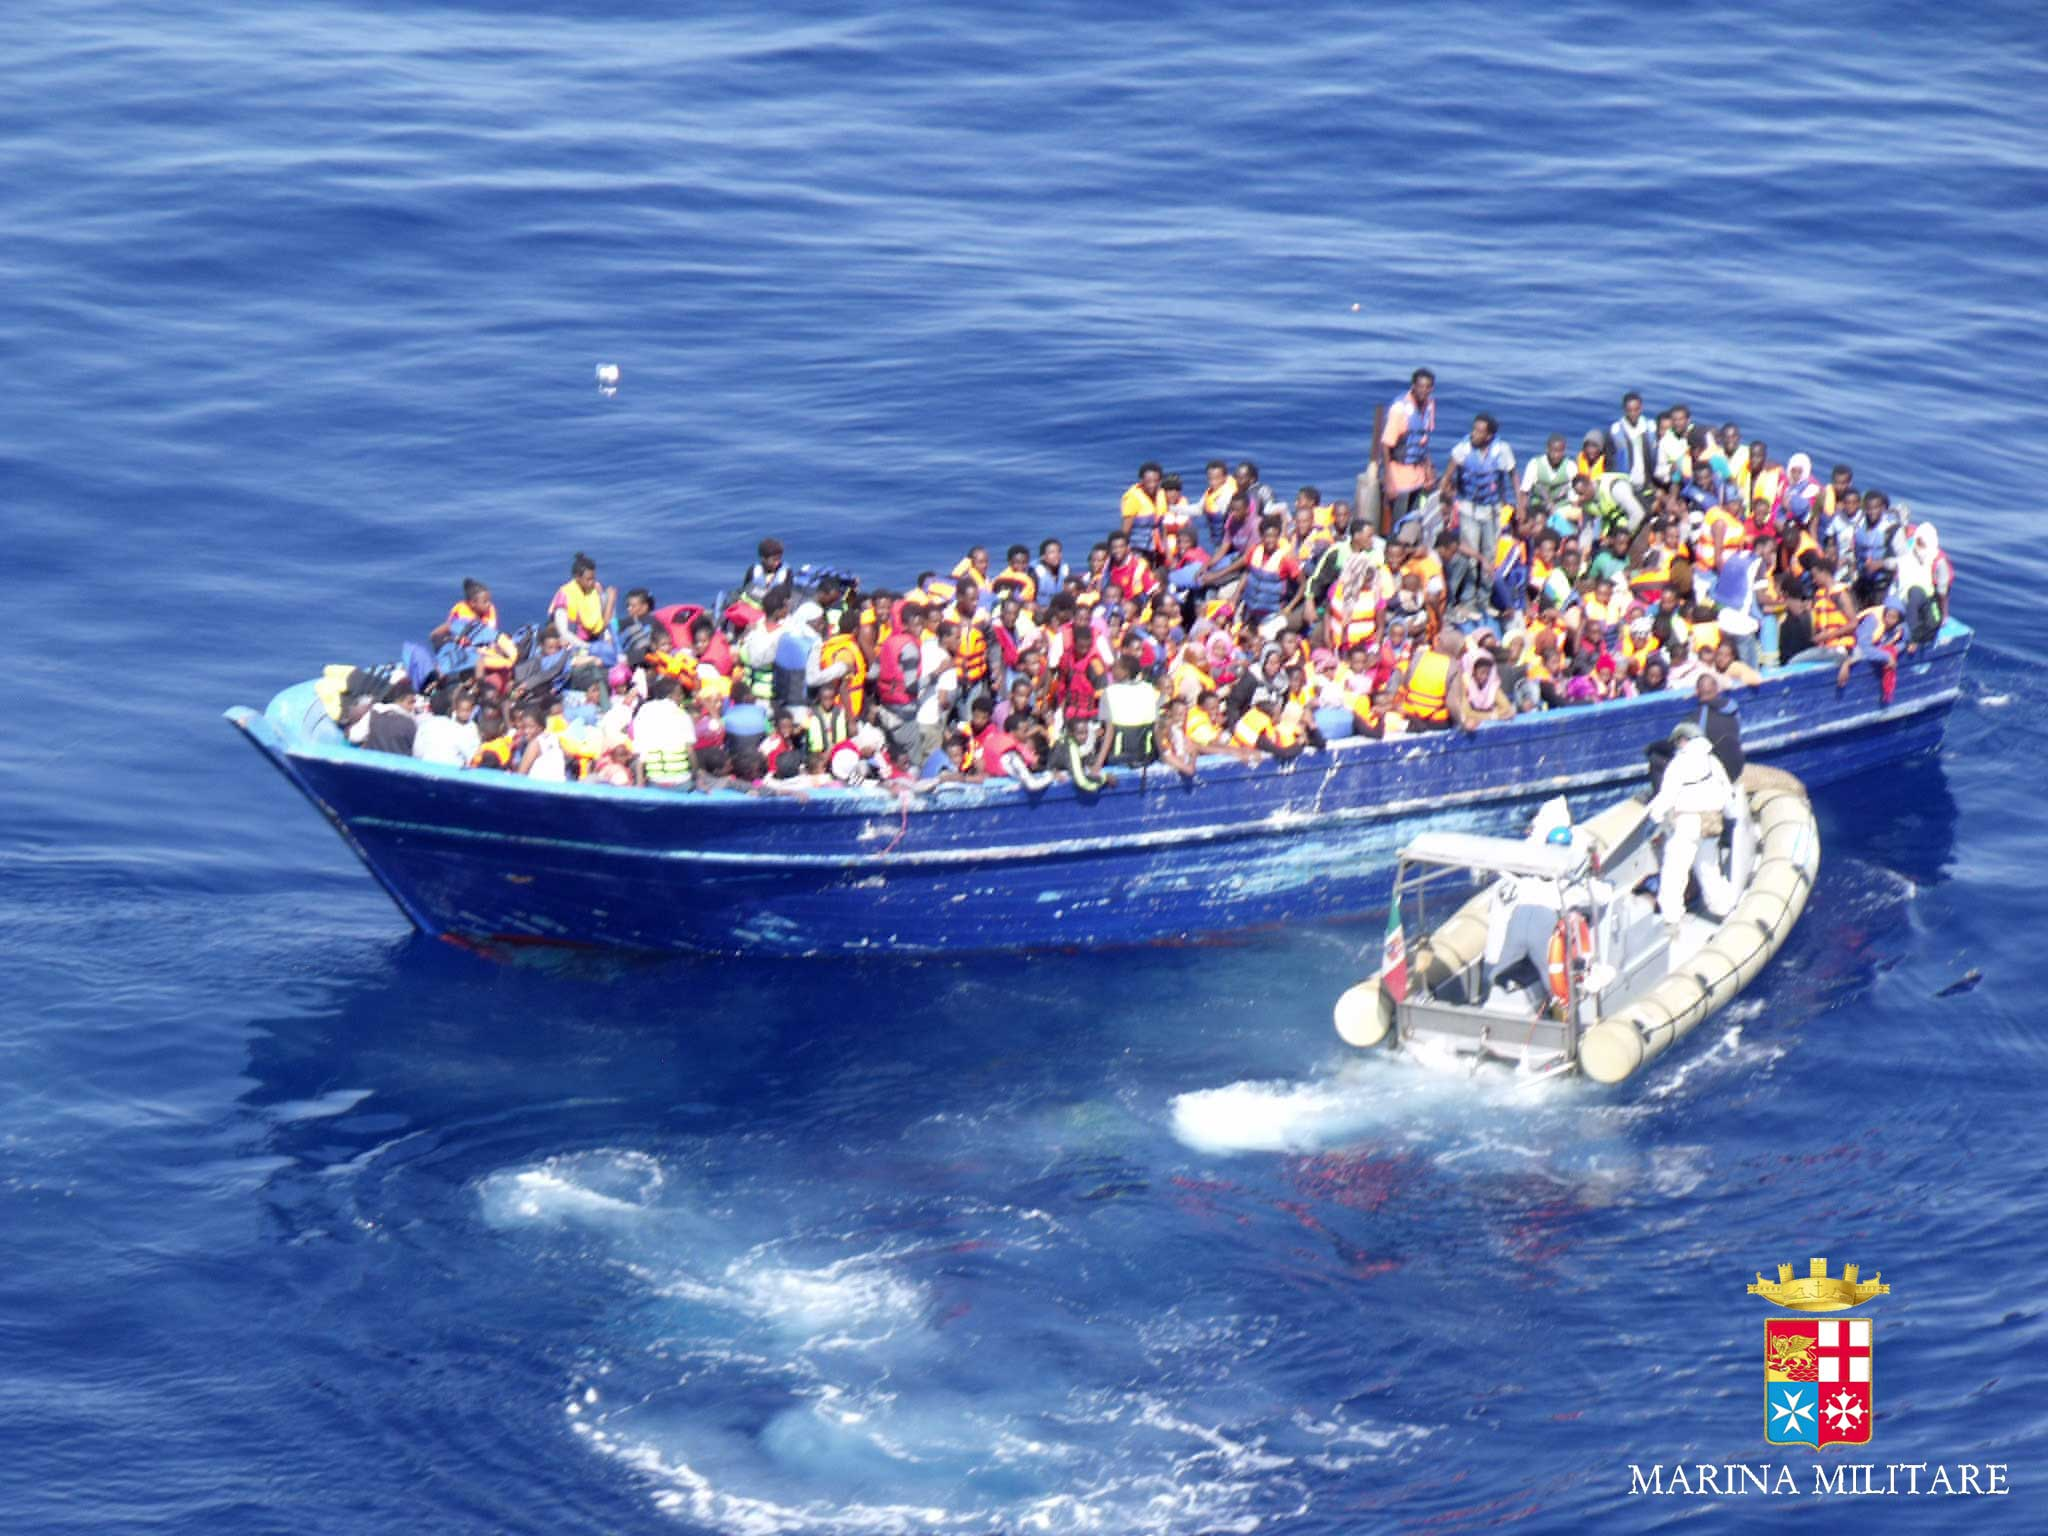 Migrants are approached by an Italian Navy dinghy boat, in the Mediterranean sea, on Aug. 22, 2015.